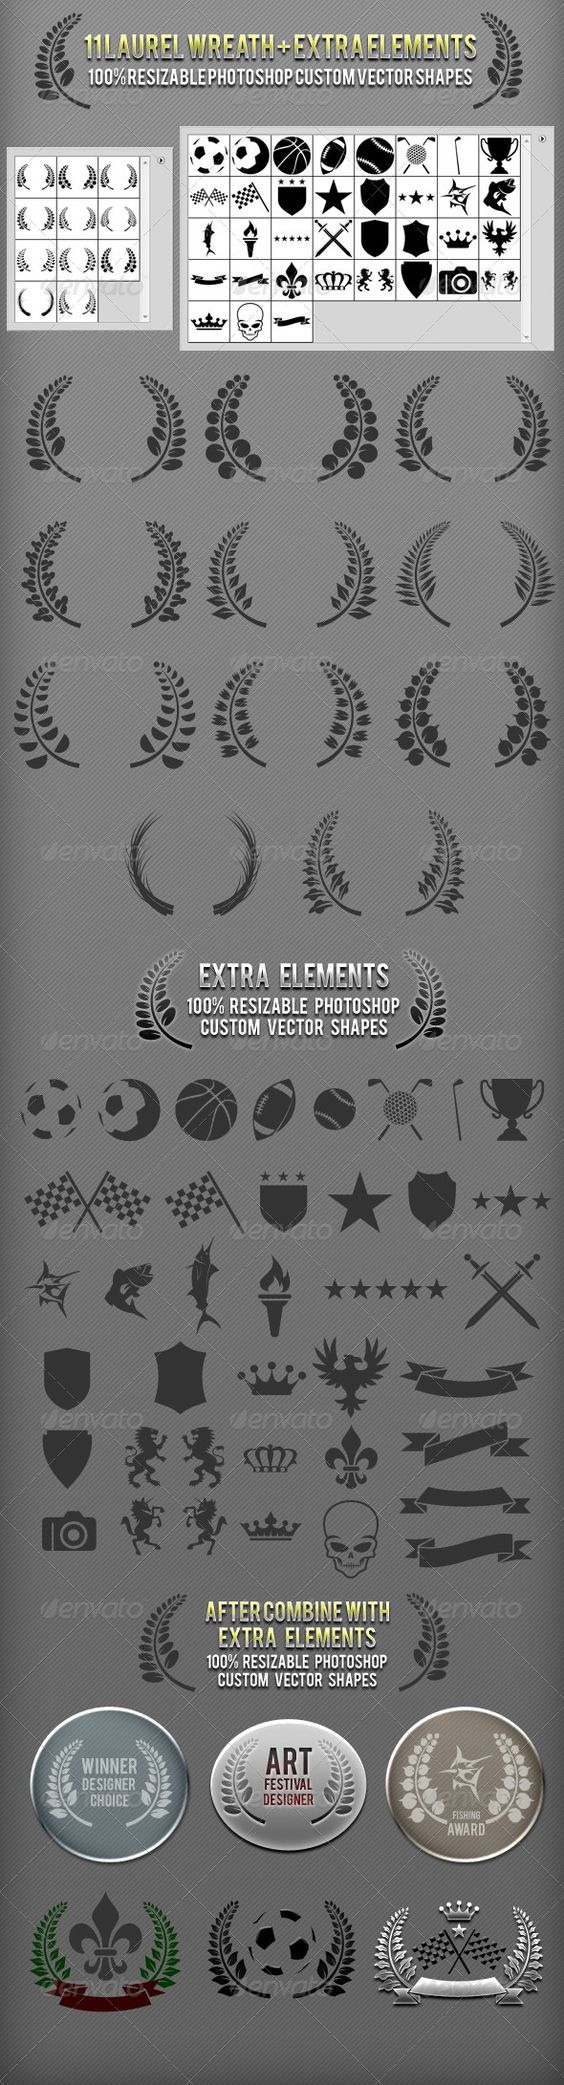 Create Your Own Photoshop Custom Shapes